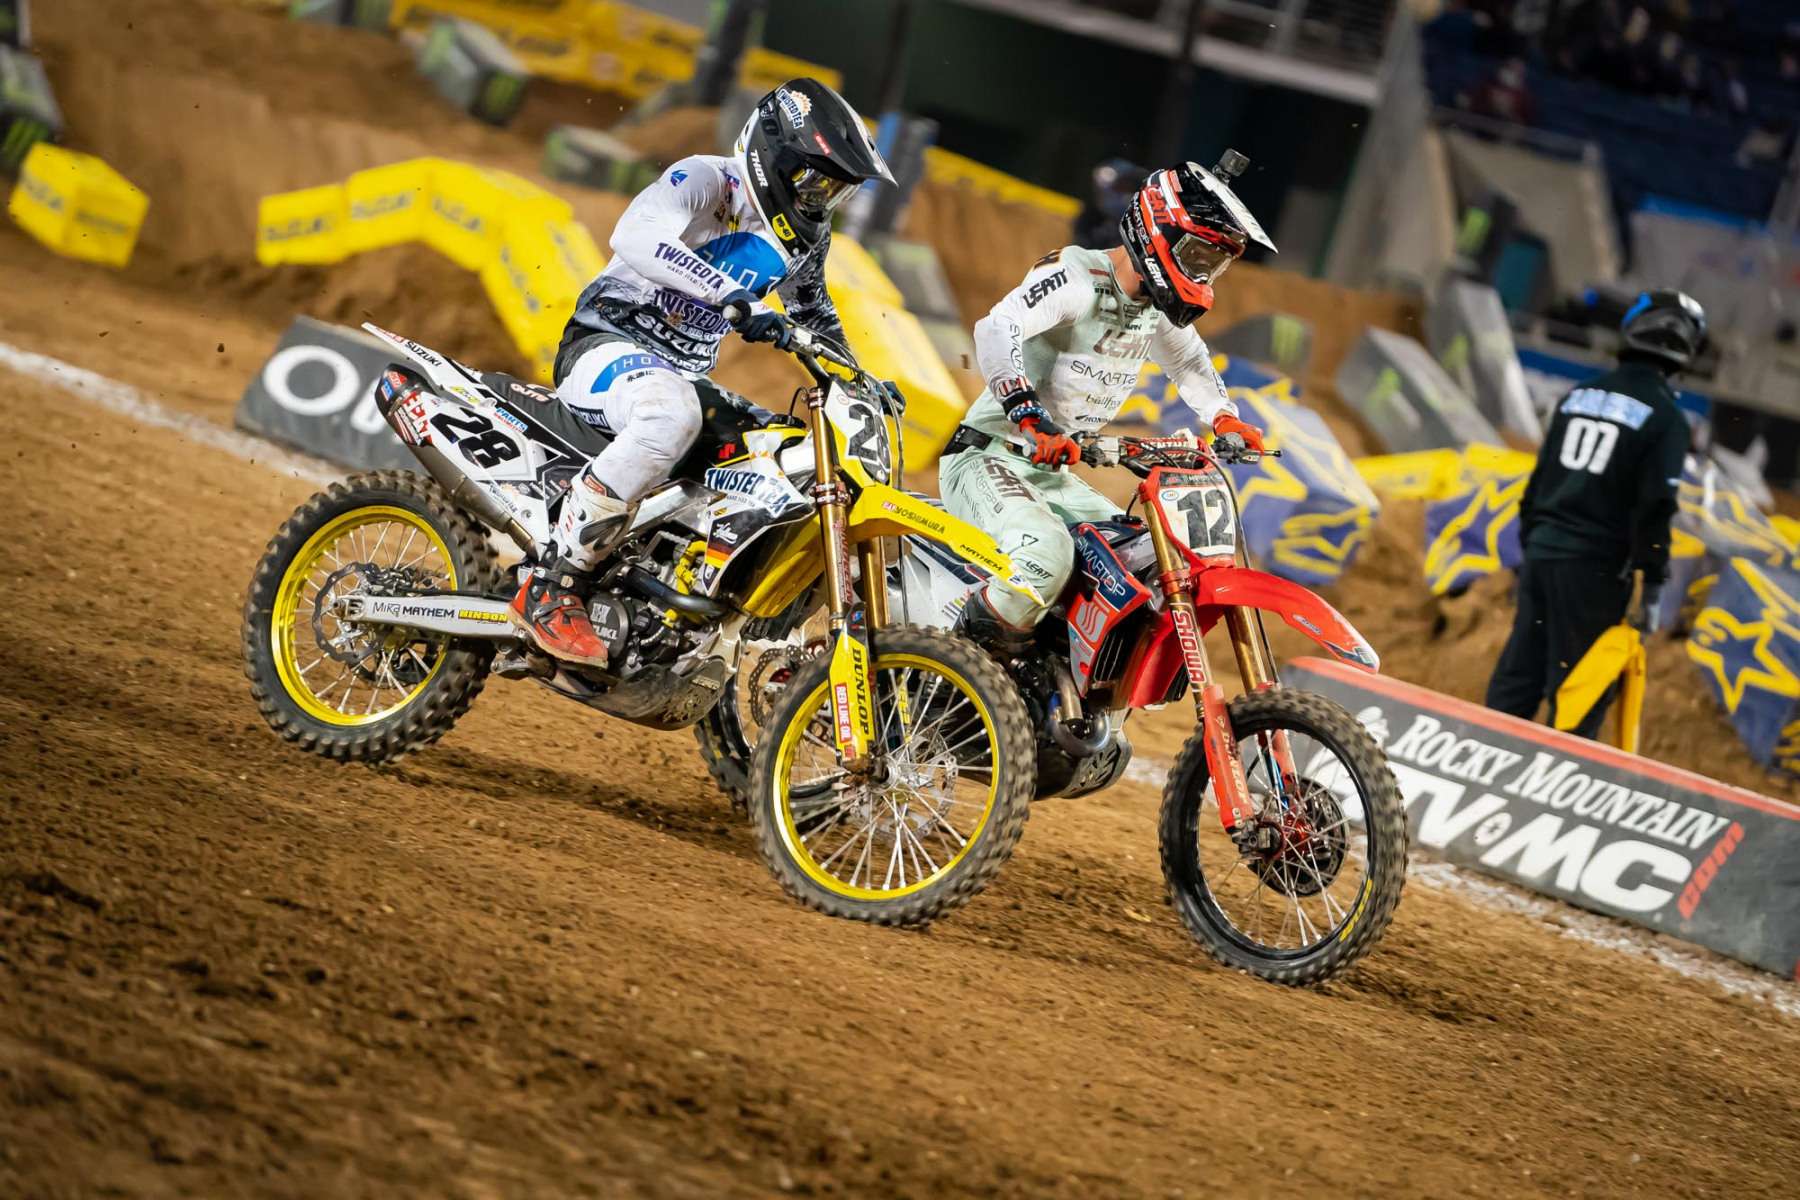 2021-ORLANDO-TWO-SUPERCROSS_KICKSTART_1545